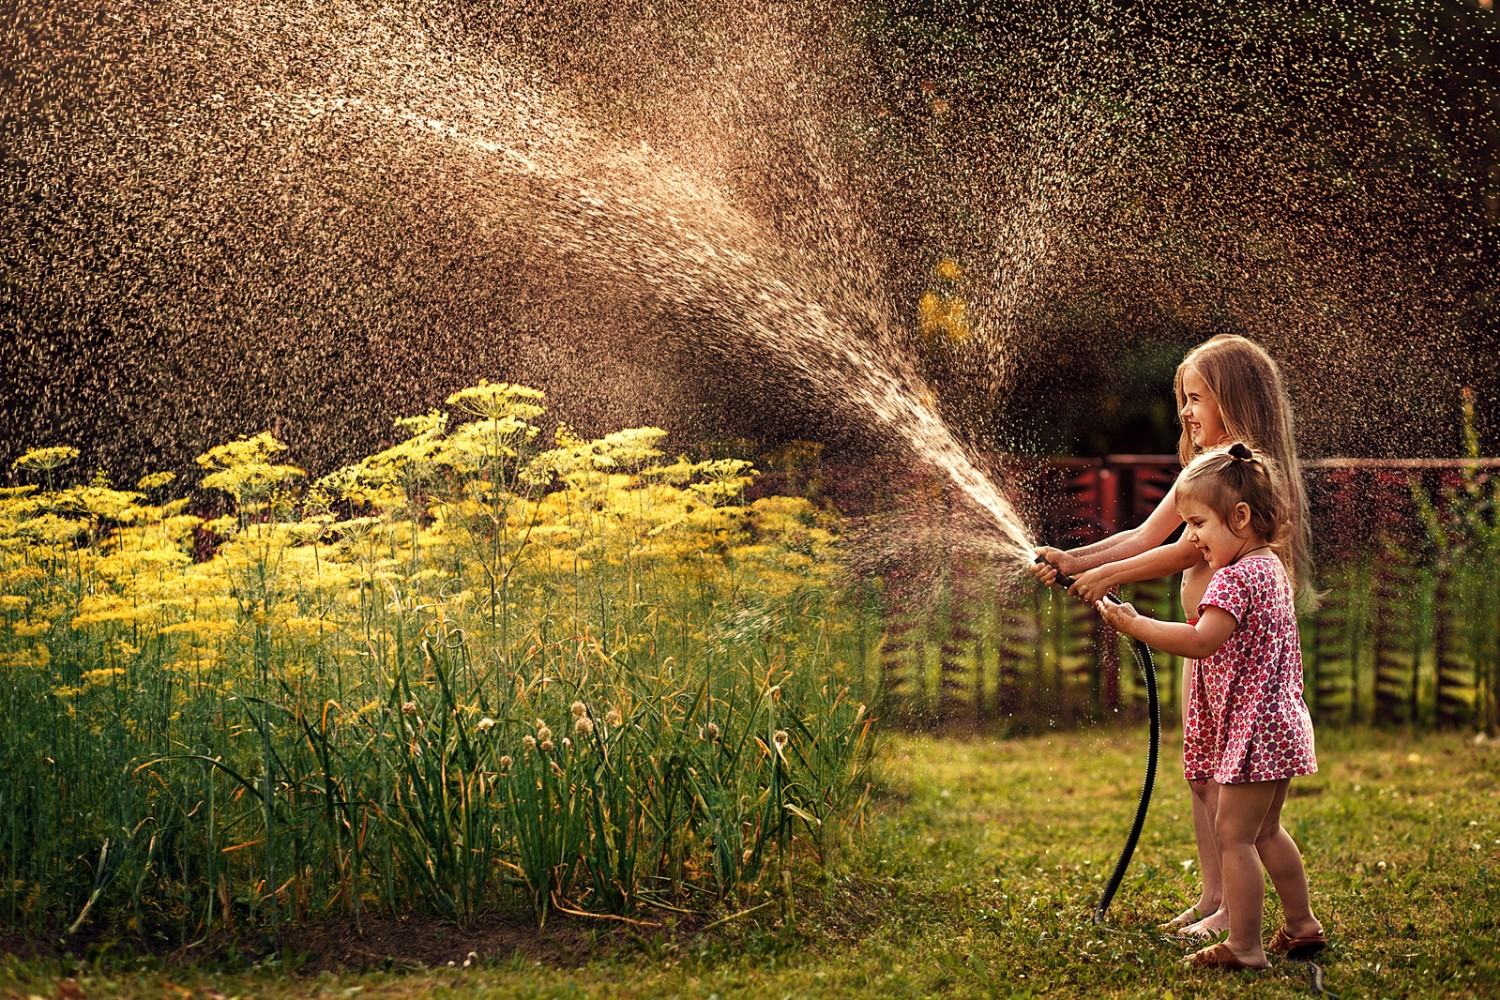 Mom Photographer Captures the Simple Joys of Childhood